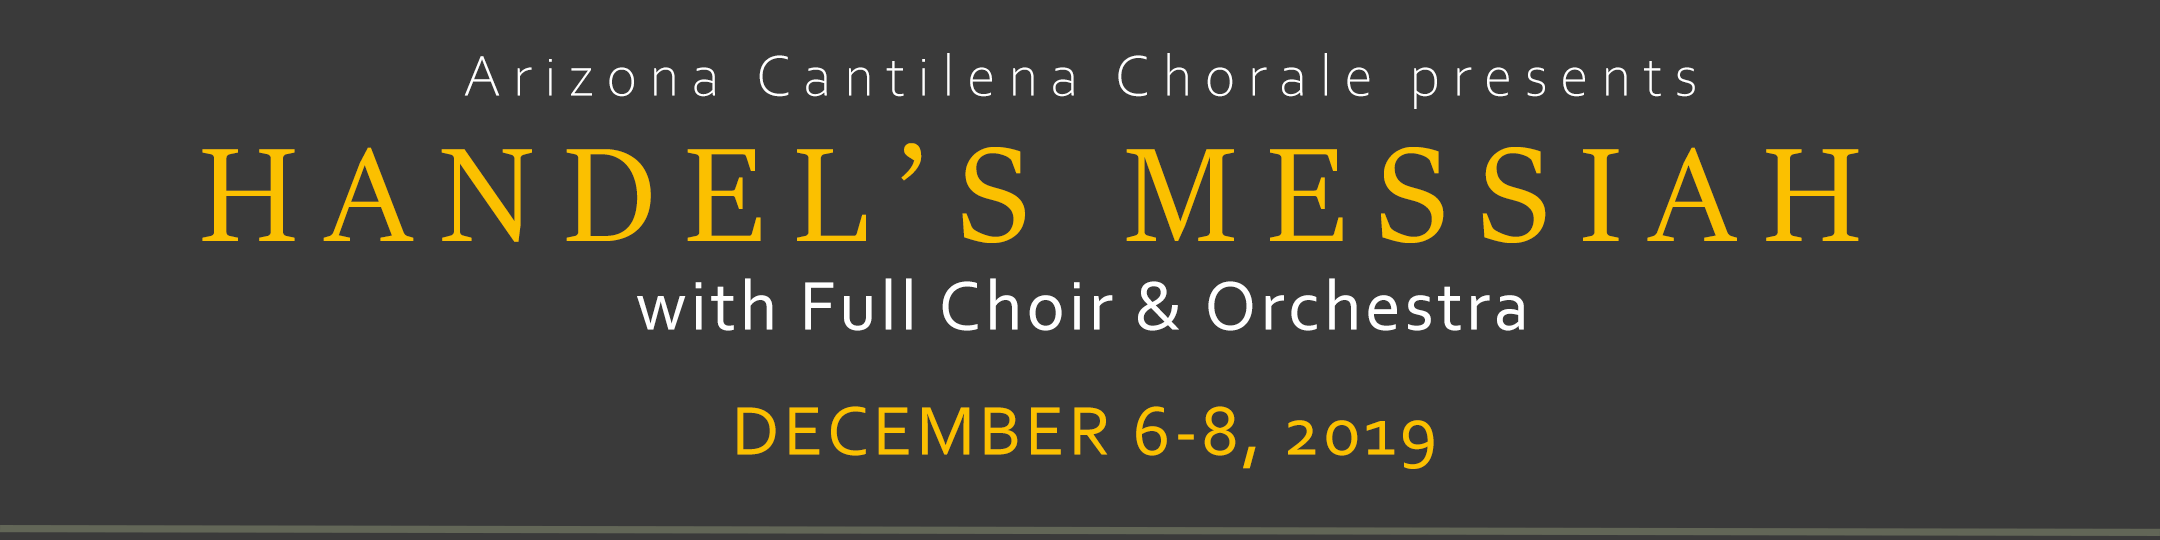 Arizona Cantilena Chorale - Handel's Messiah with Choir and Orchestra